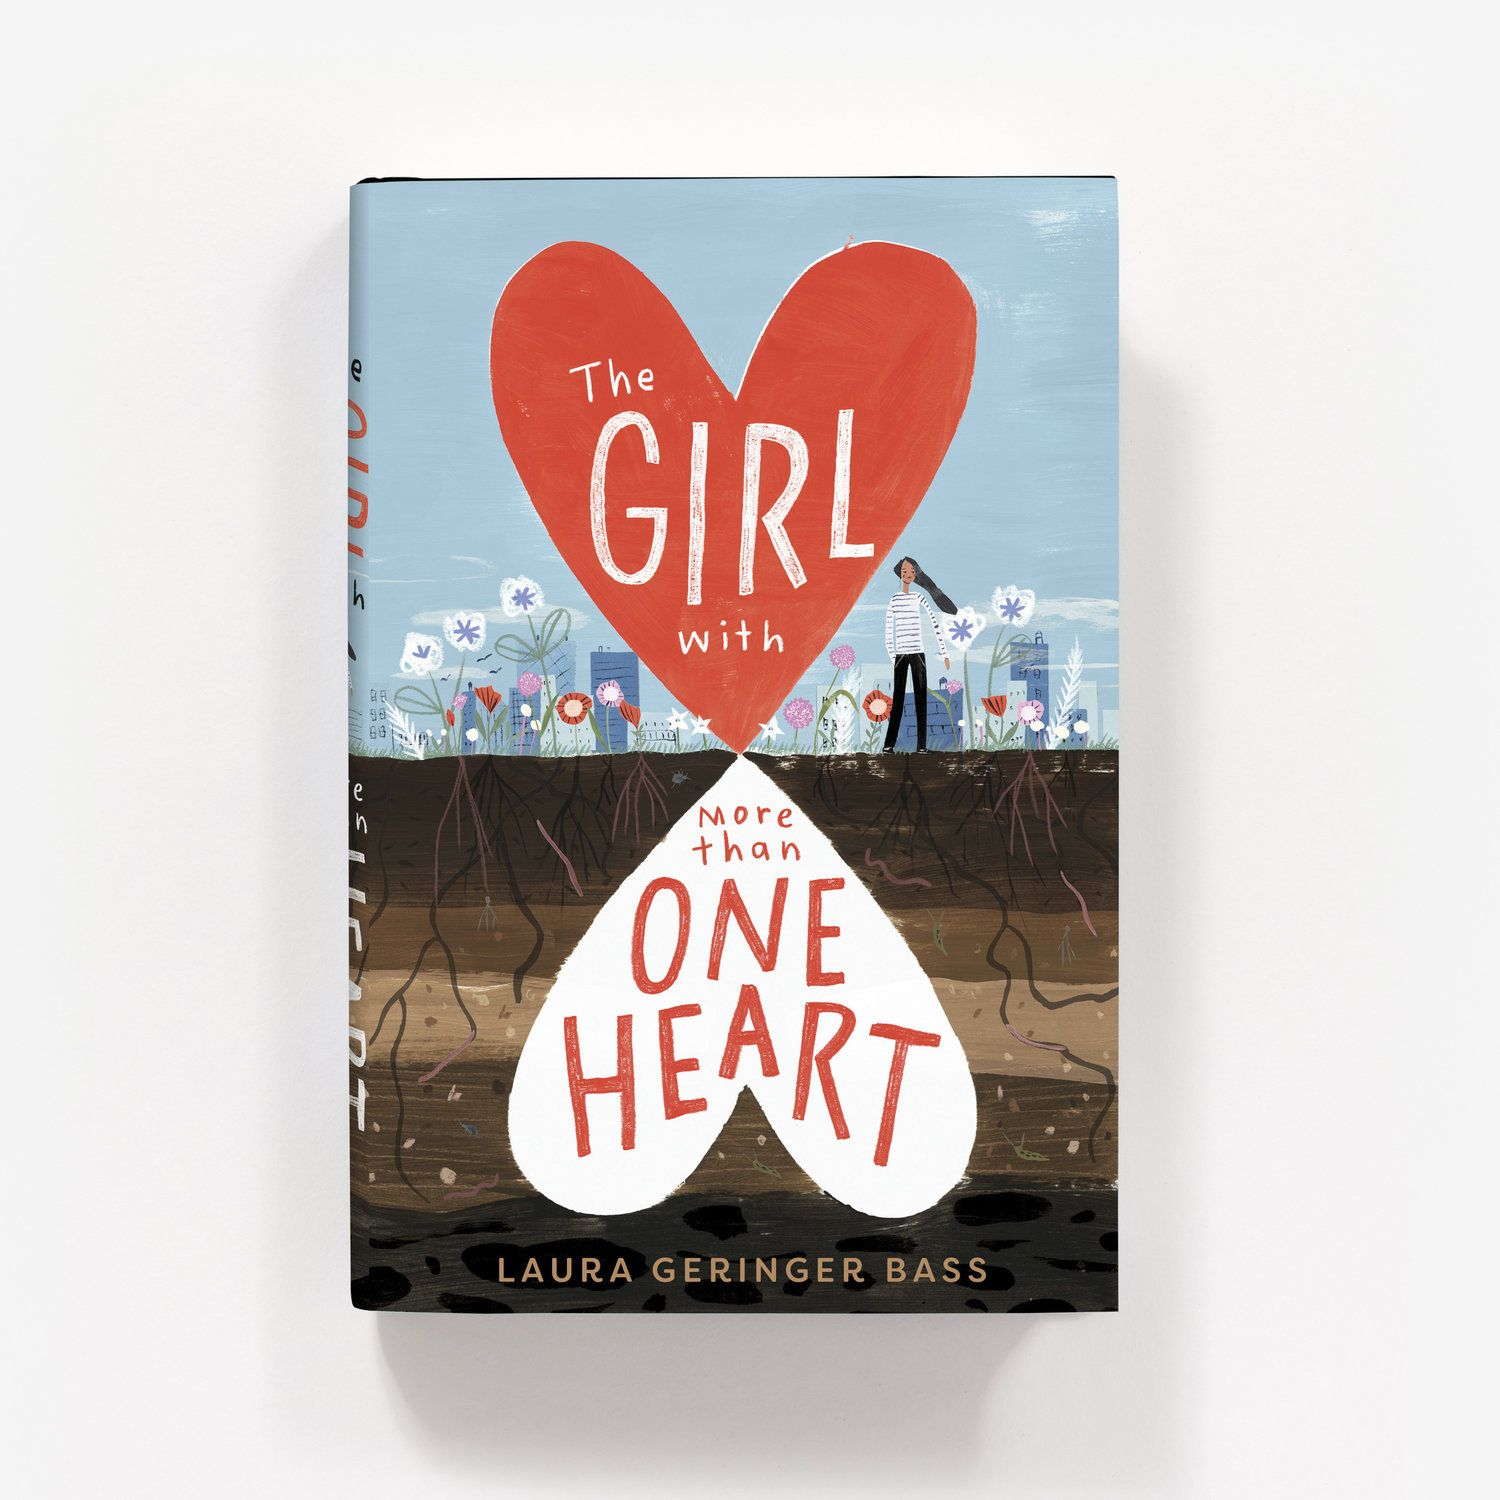 Book Cover Art Freelance Jobs : The girl with more than one heart cover illustration by